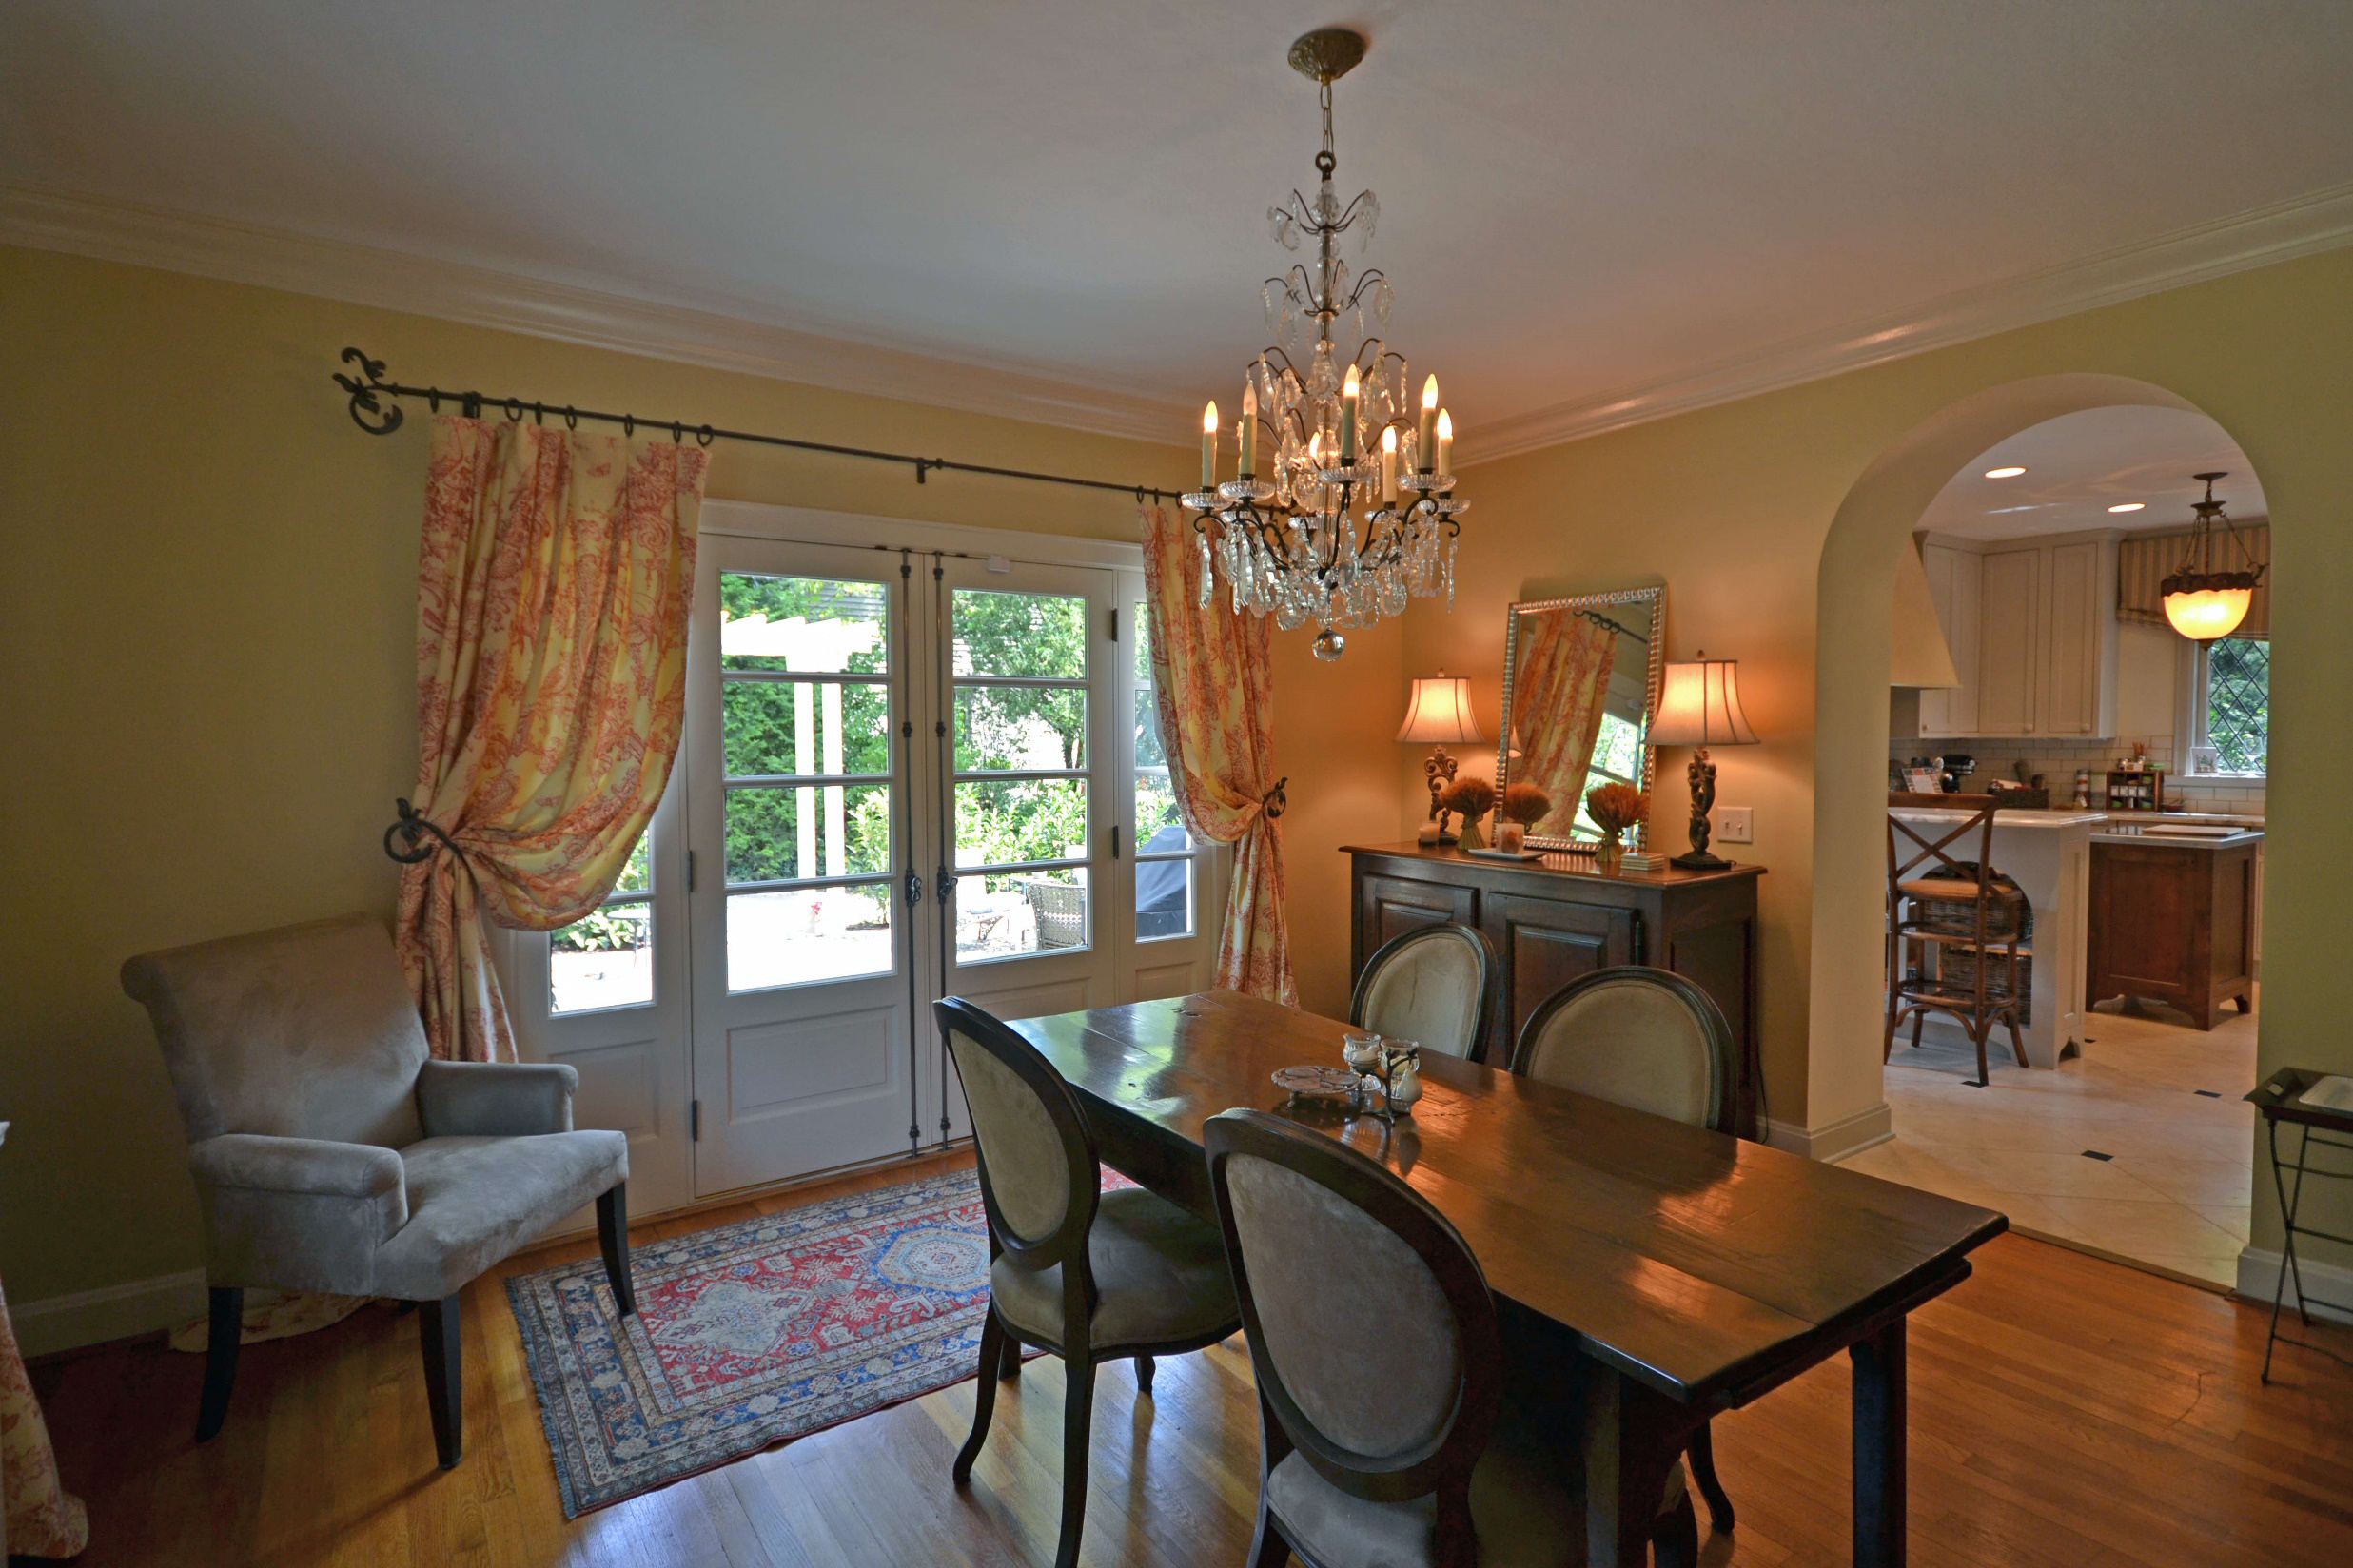 This discerning homeowner wanted to open the dining room to a terrace that did not perviously exist - however the doors had to evoke the tradition of this home.